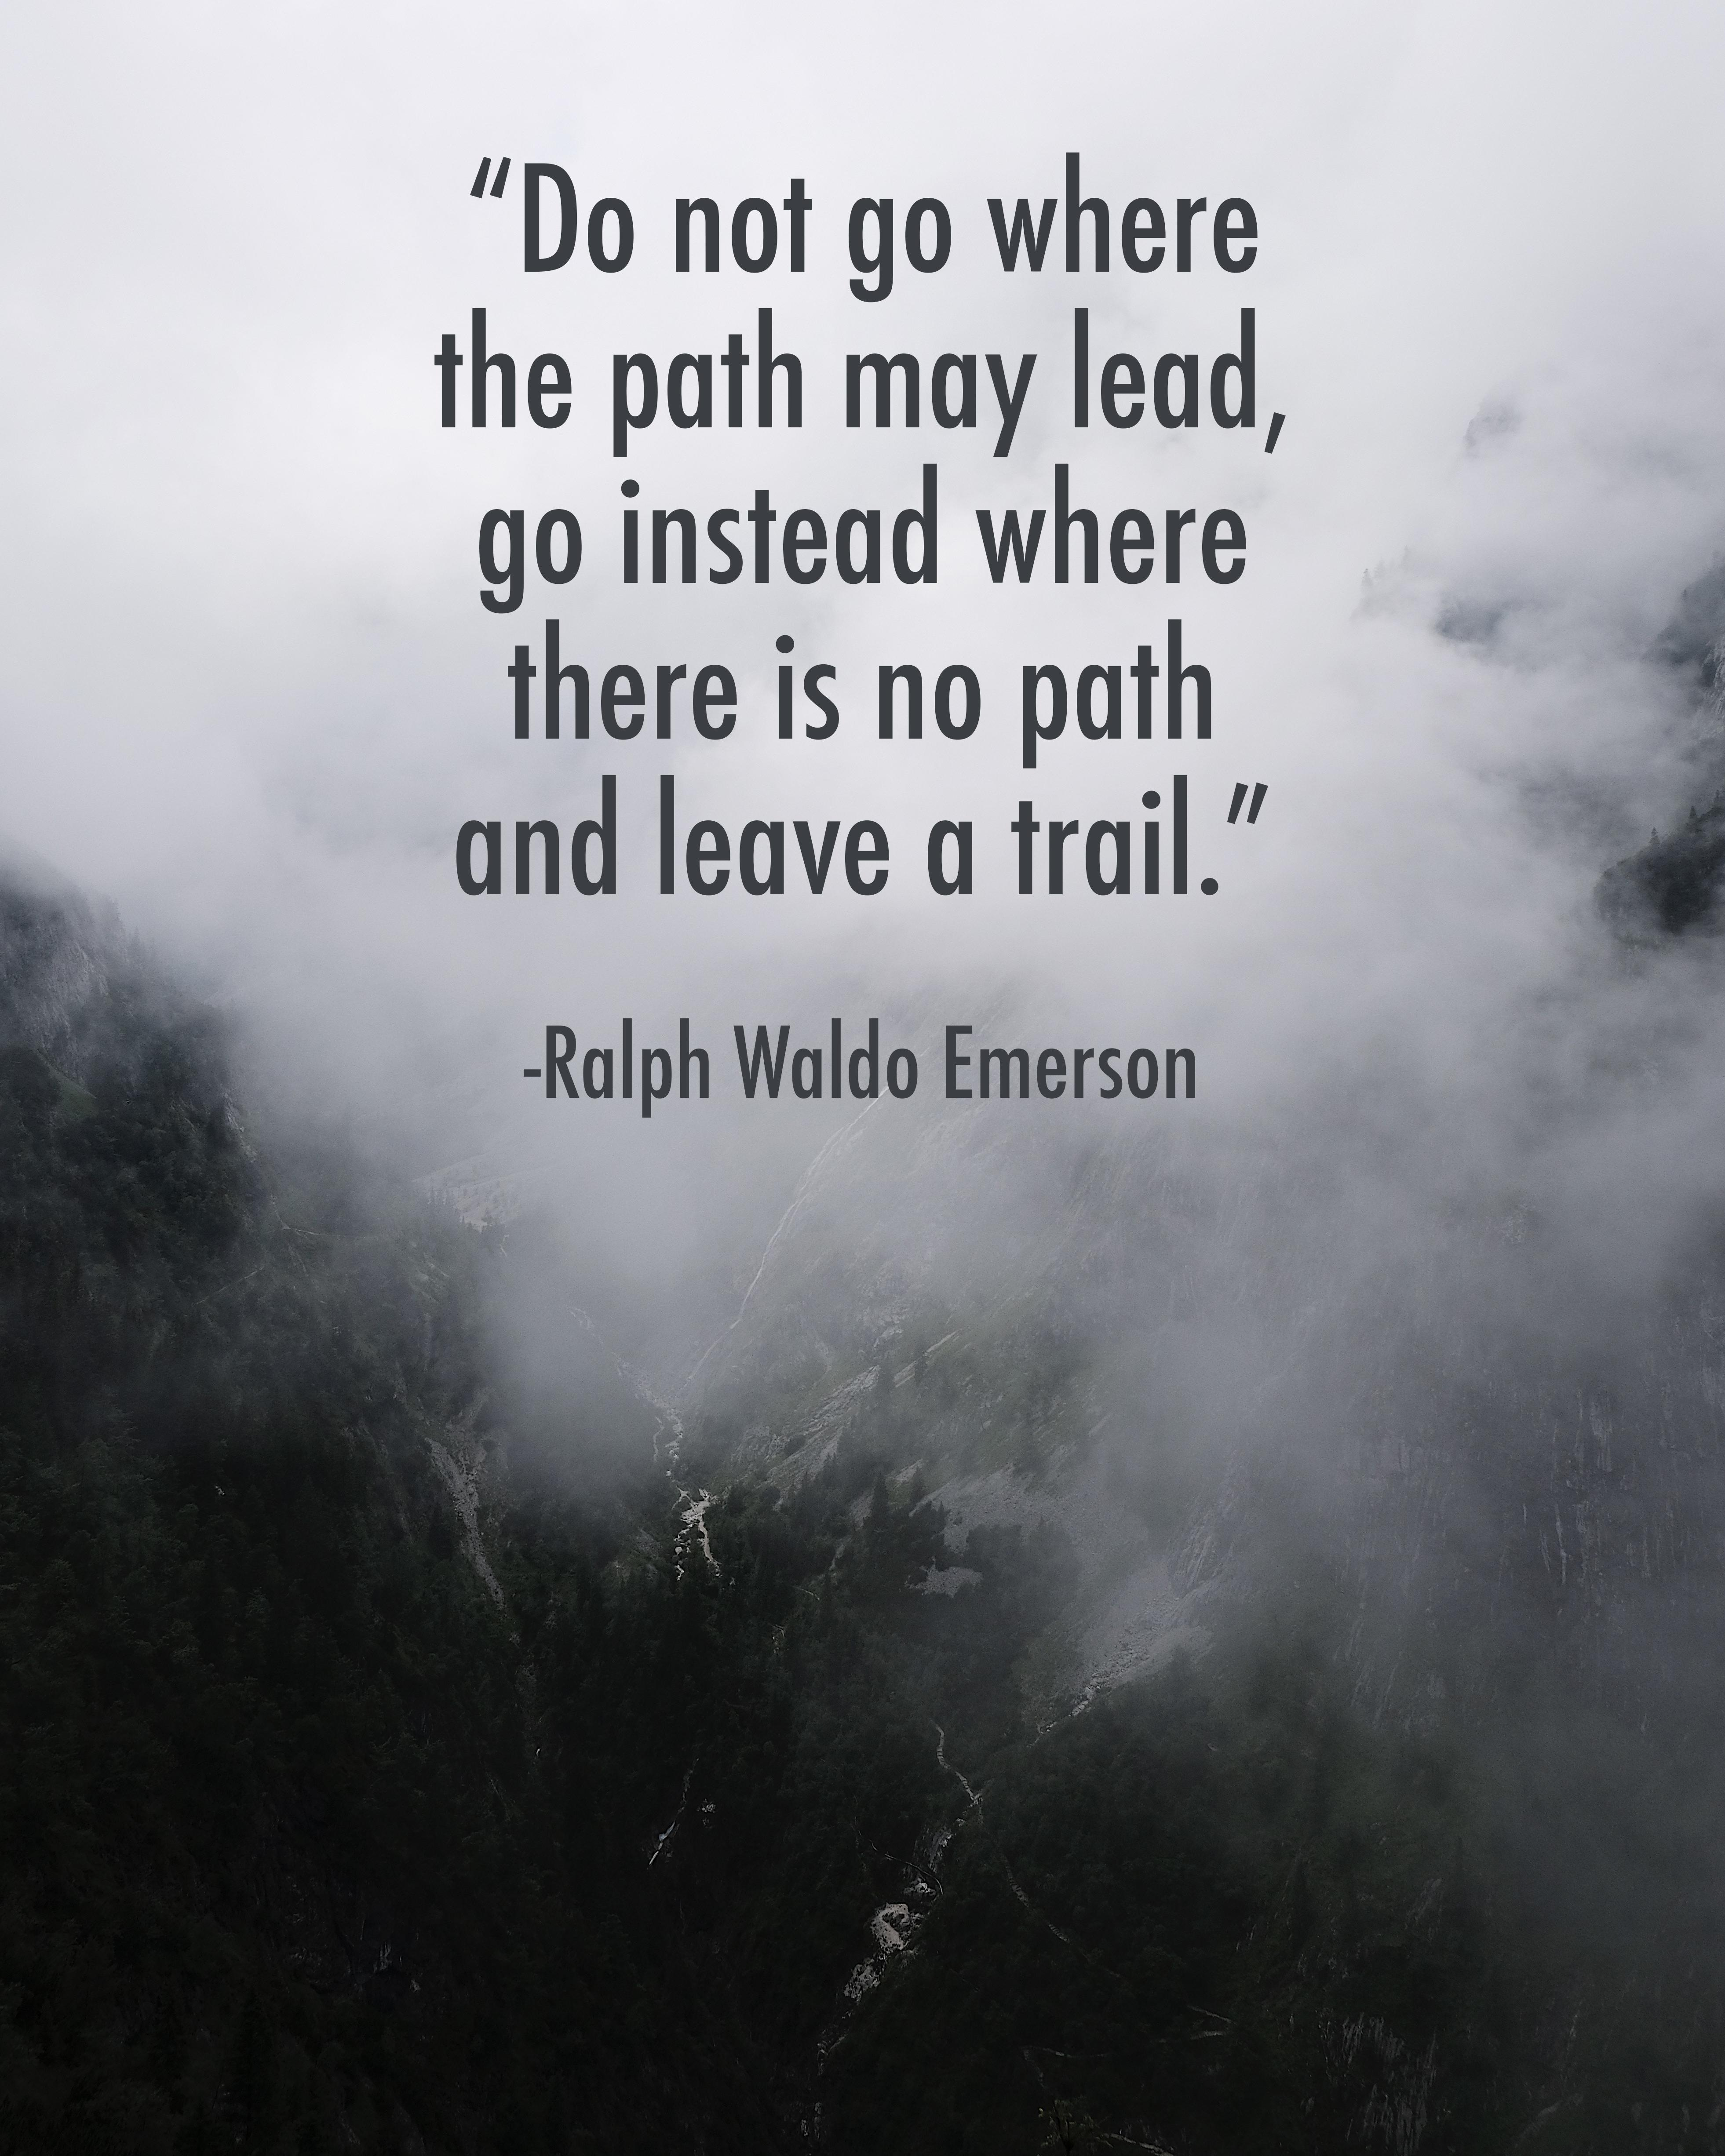 [Image] Be a trailblazer.